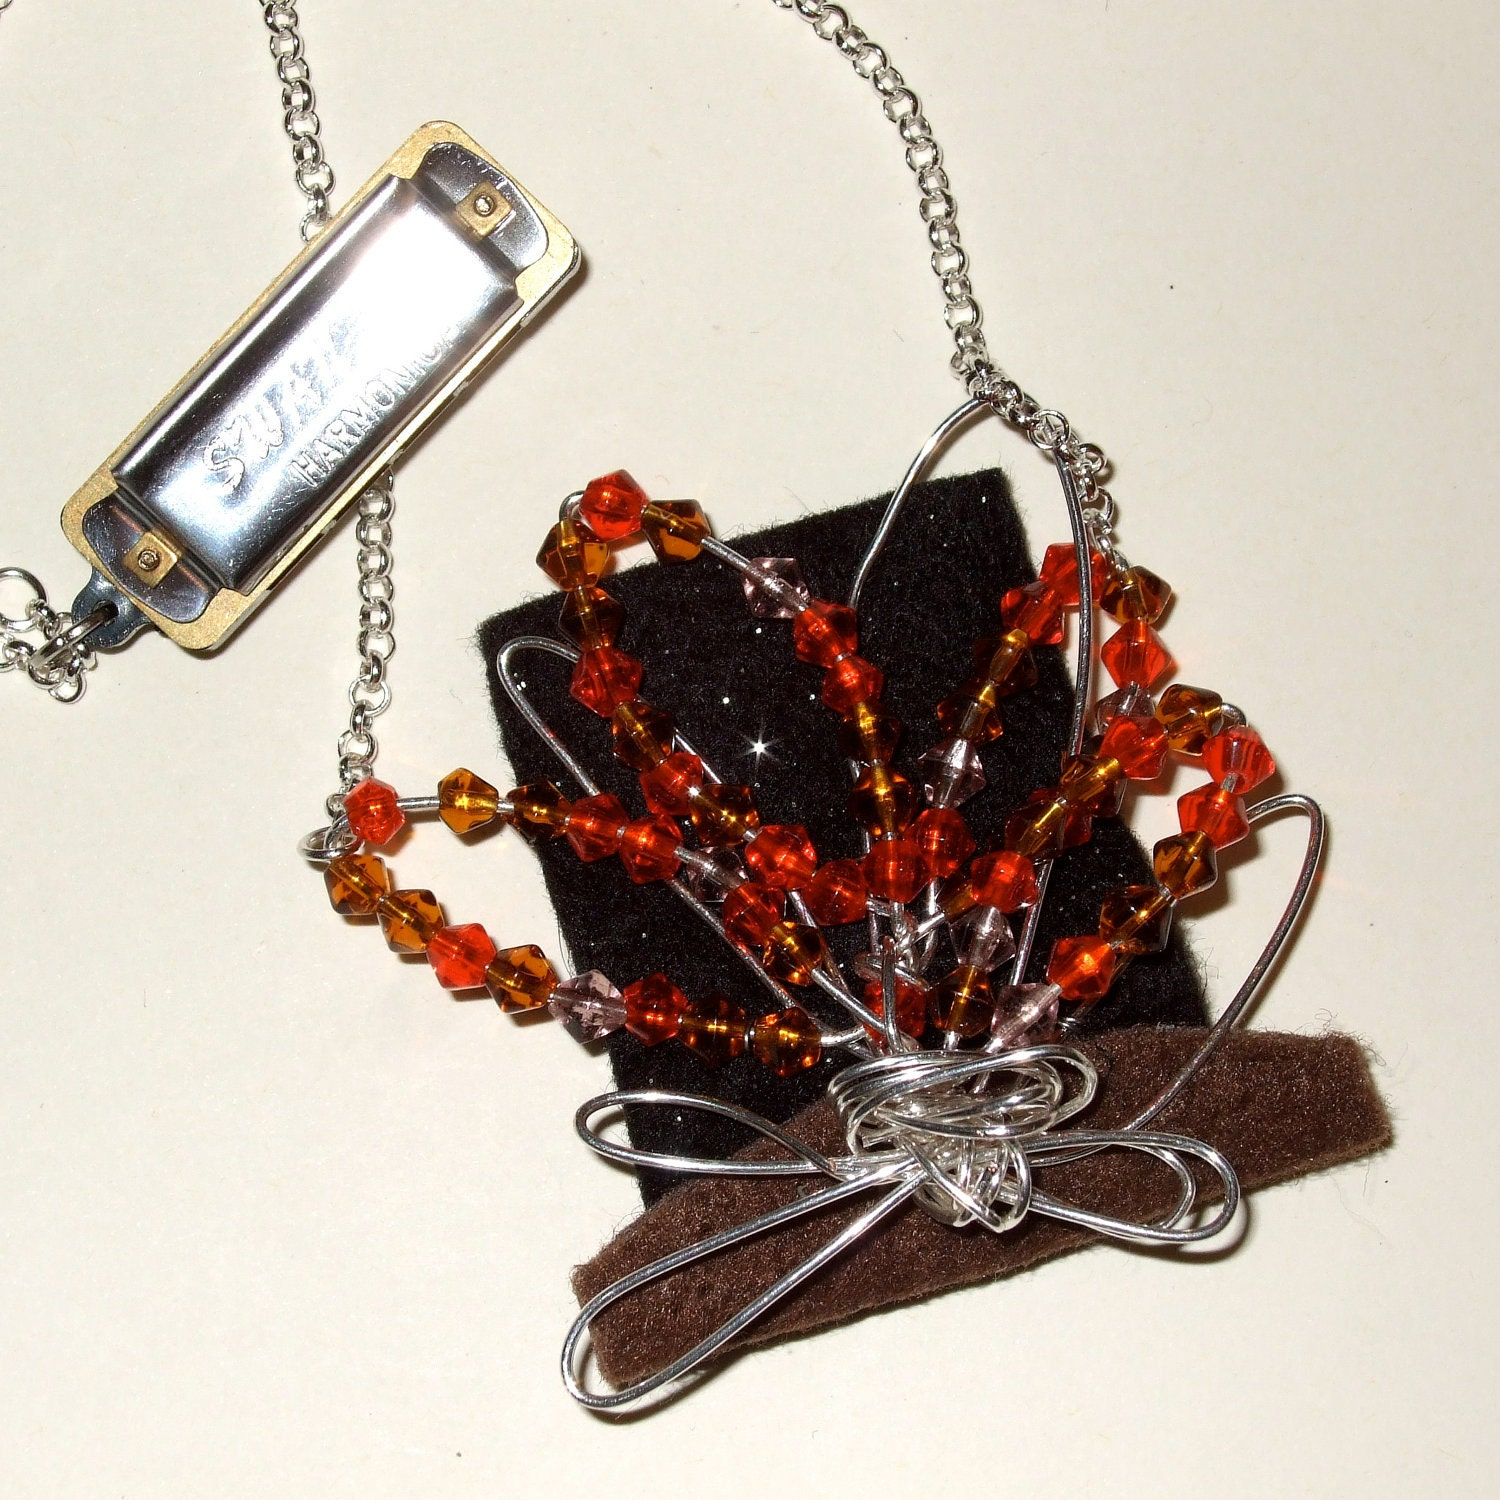 Harmonica Necklace: Campfire Necklace Harmonica Necklace Beaded Flames Festival